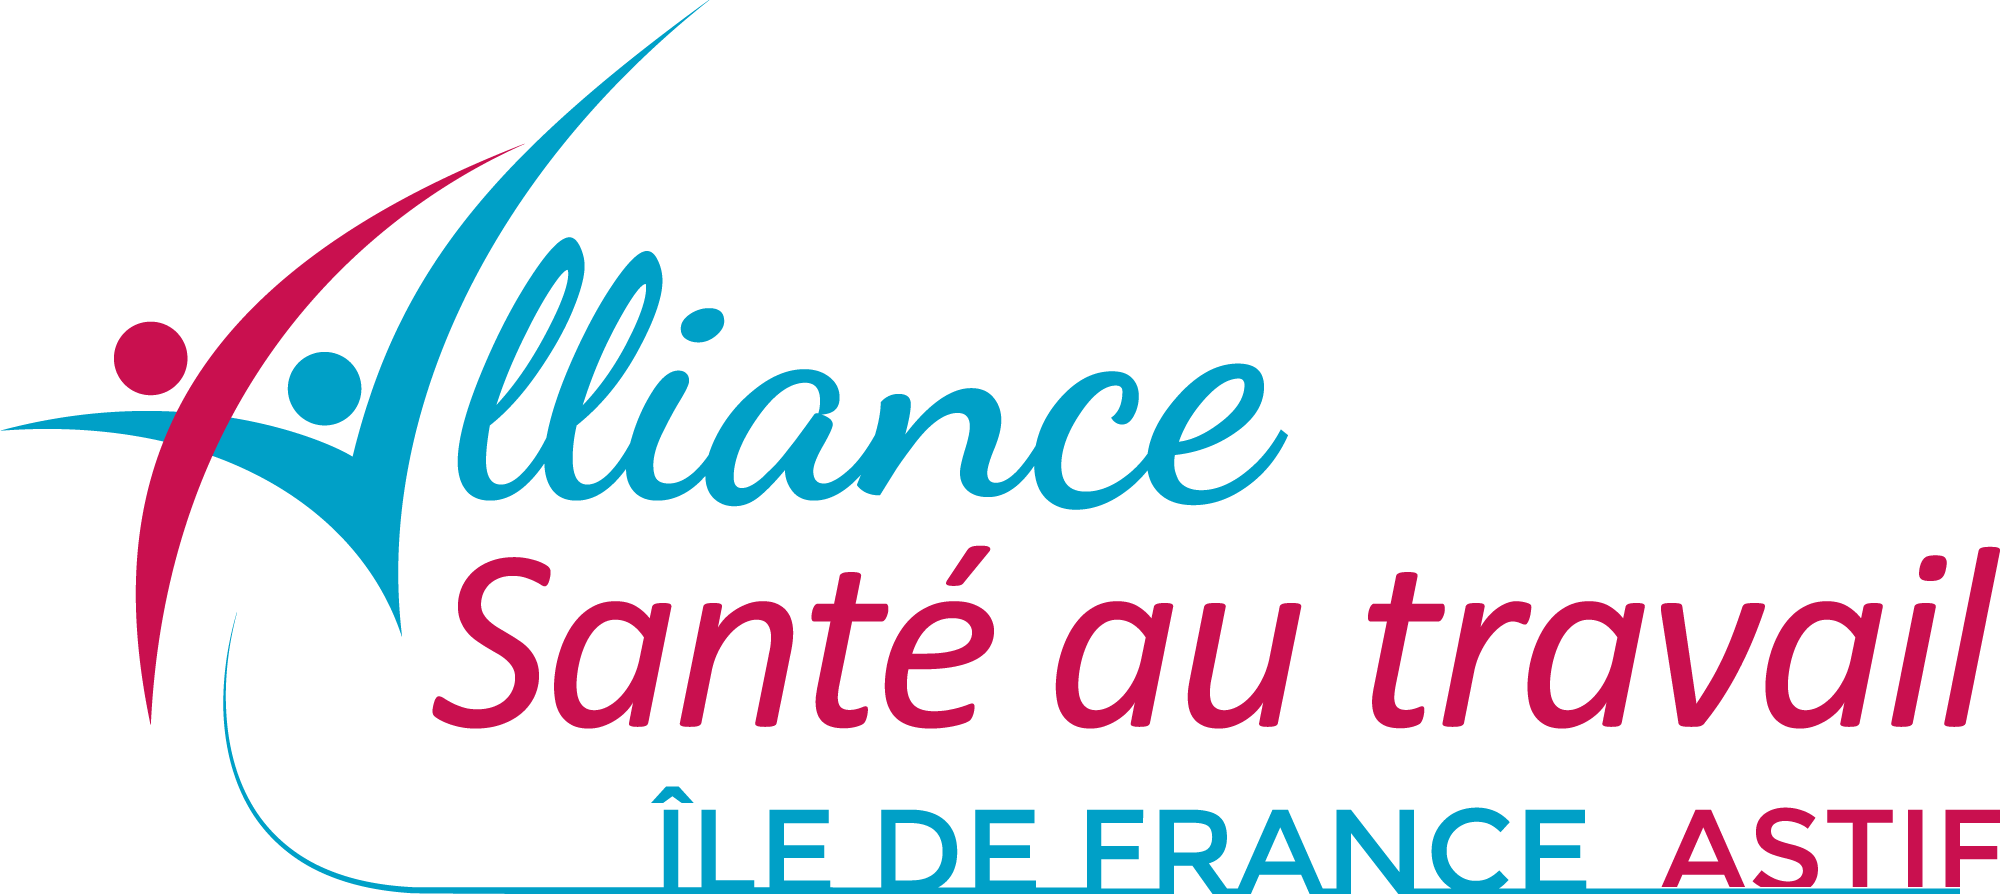 alliance sante au travail